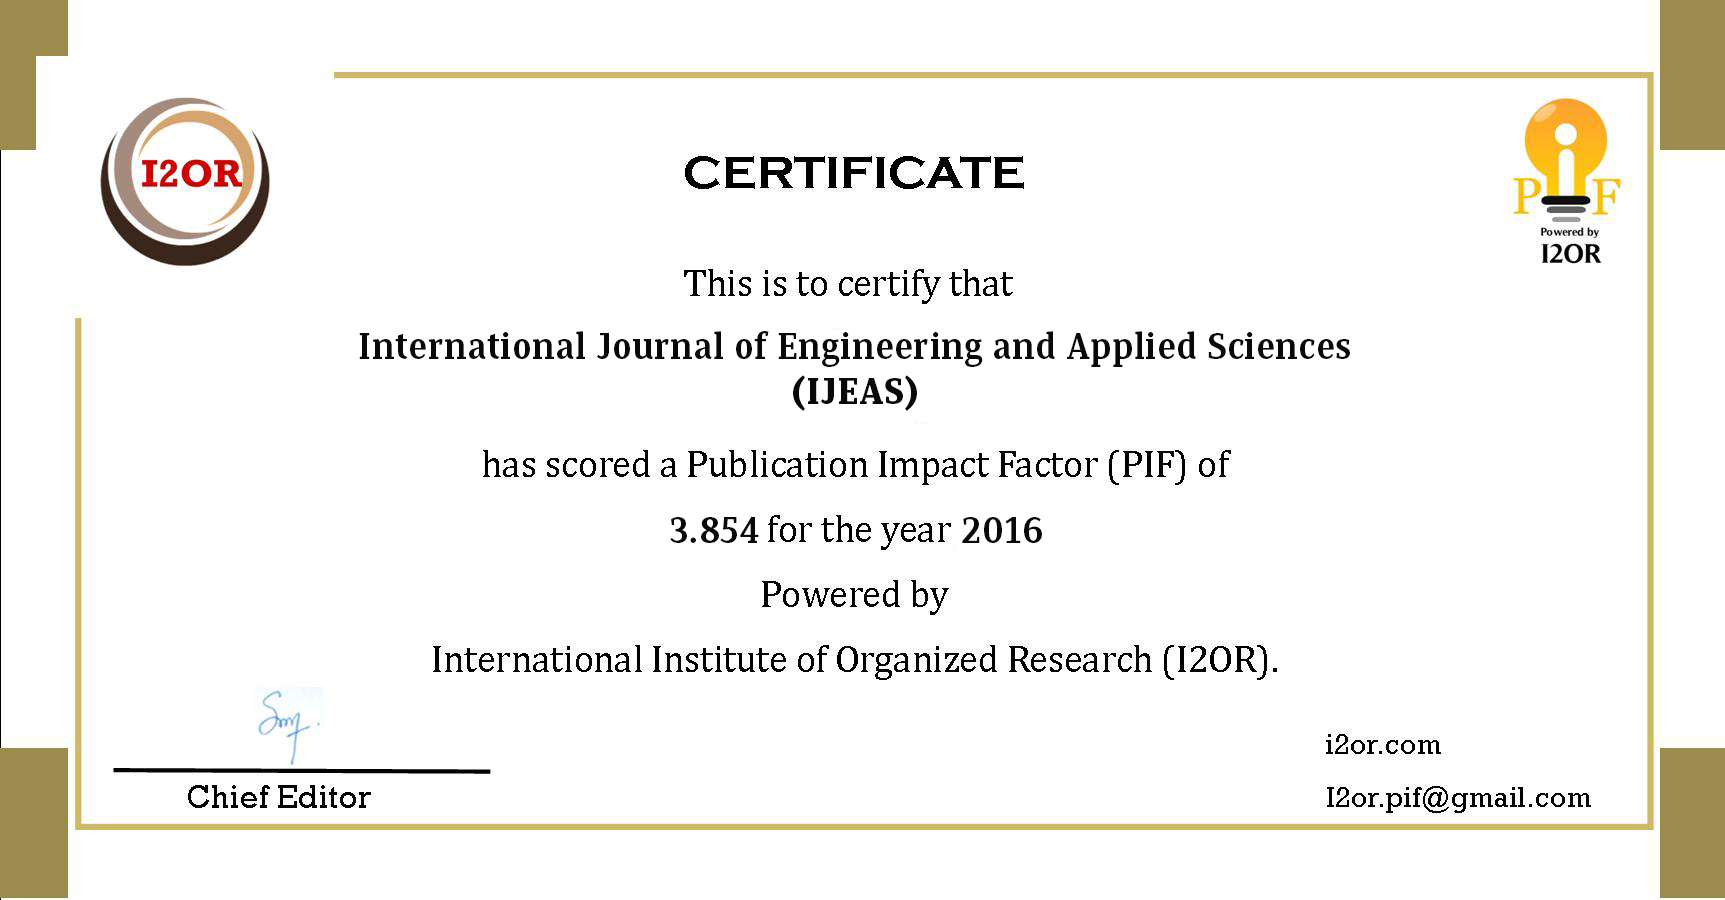 022 Research Paper Ijeas20pif Best Journals To Publish Stunning Papers In Computer Science List Of Full